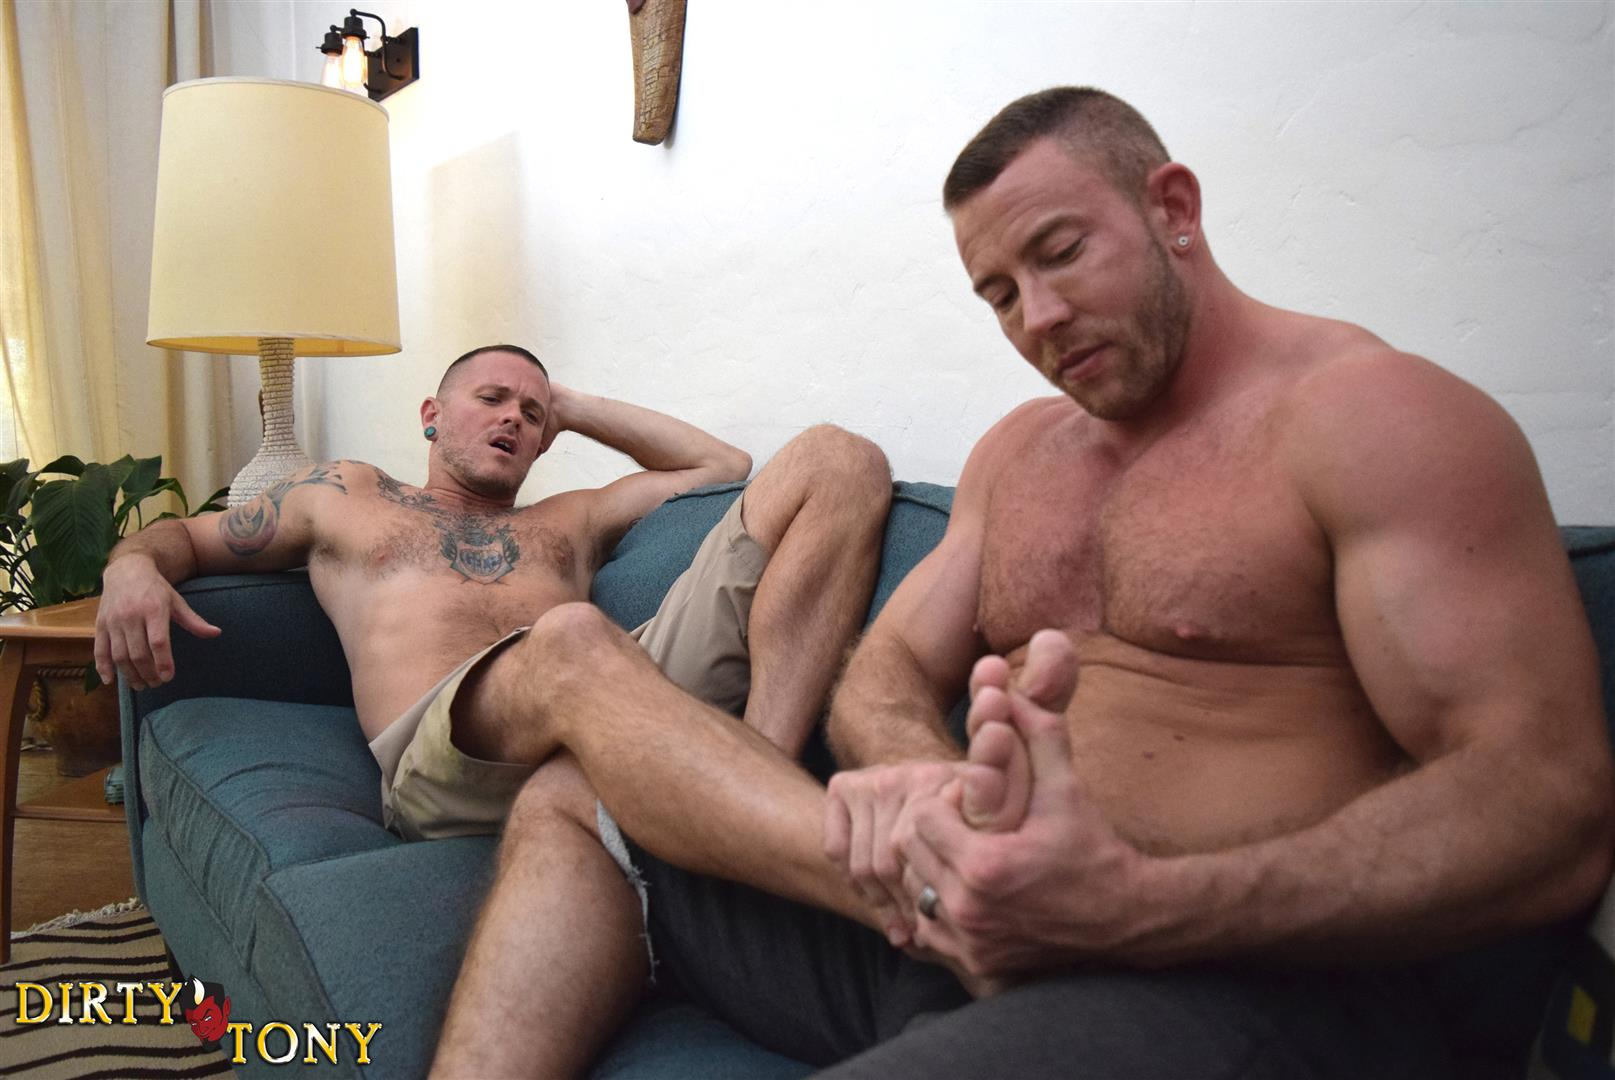 Dirty-Tony-Shay-Michaels-and-Max-Cameron-Hairy-Muscle-Hunk-Bareback-Amateur-Gay-Porn-04 Hairy Muscle Hunk Shay Michaels Barebacking Max Cameron